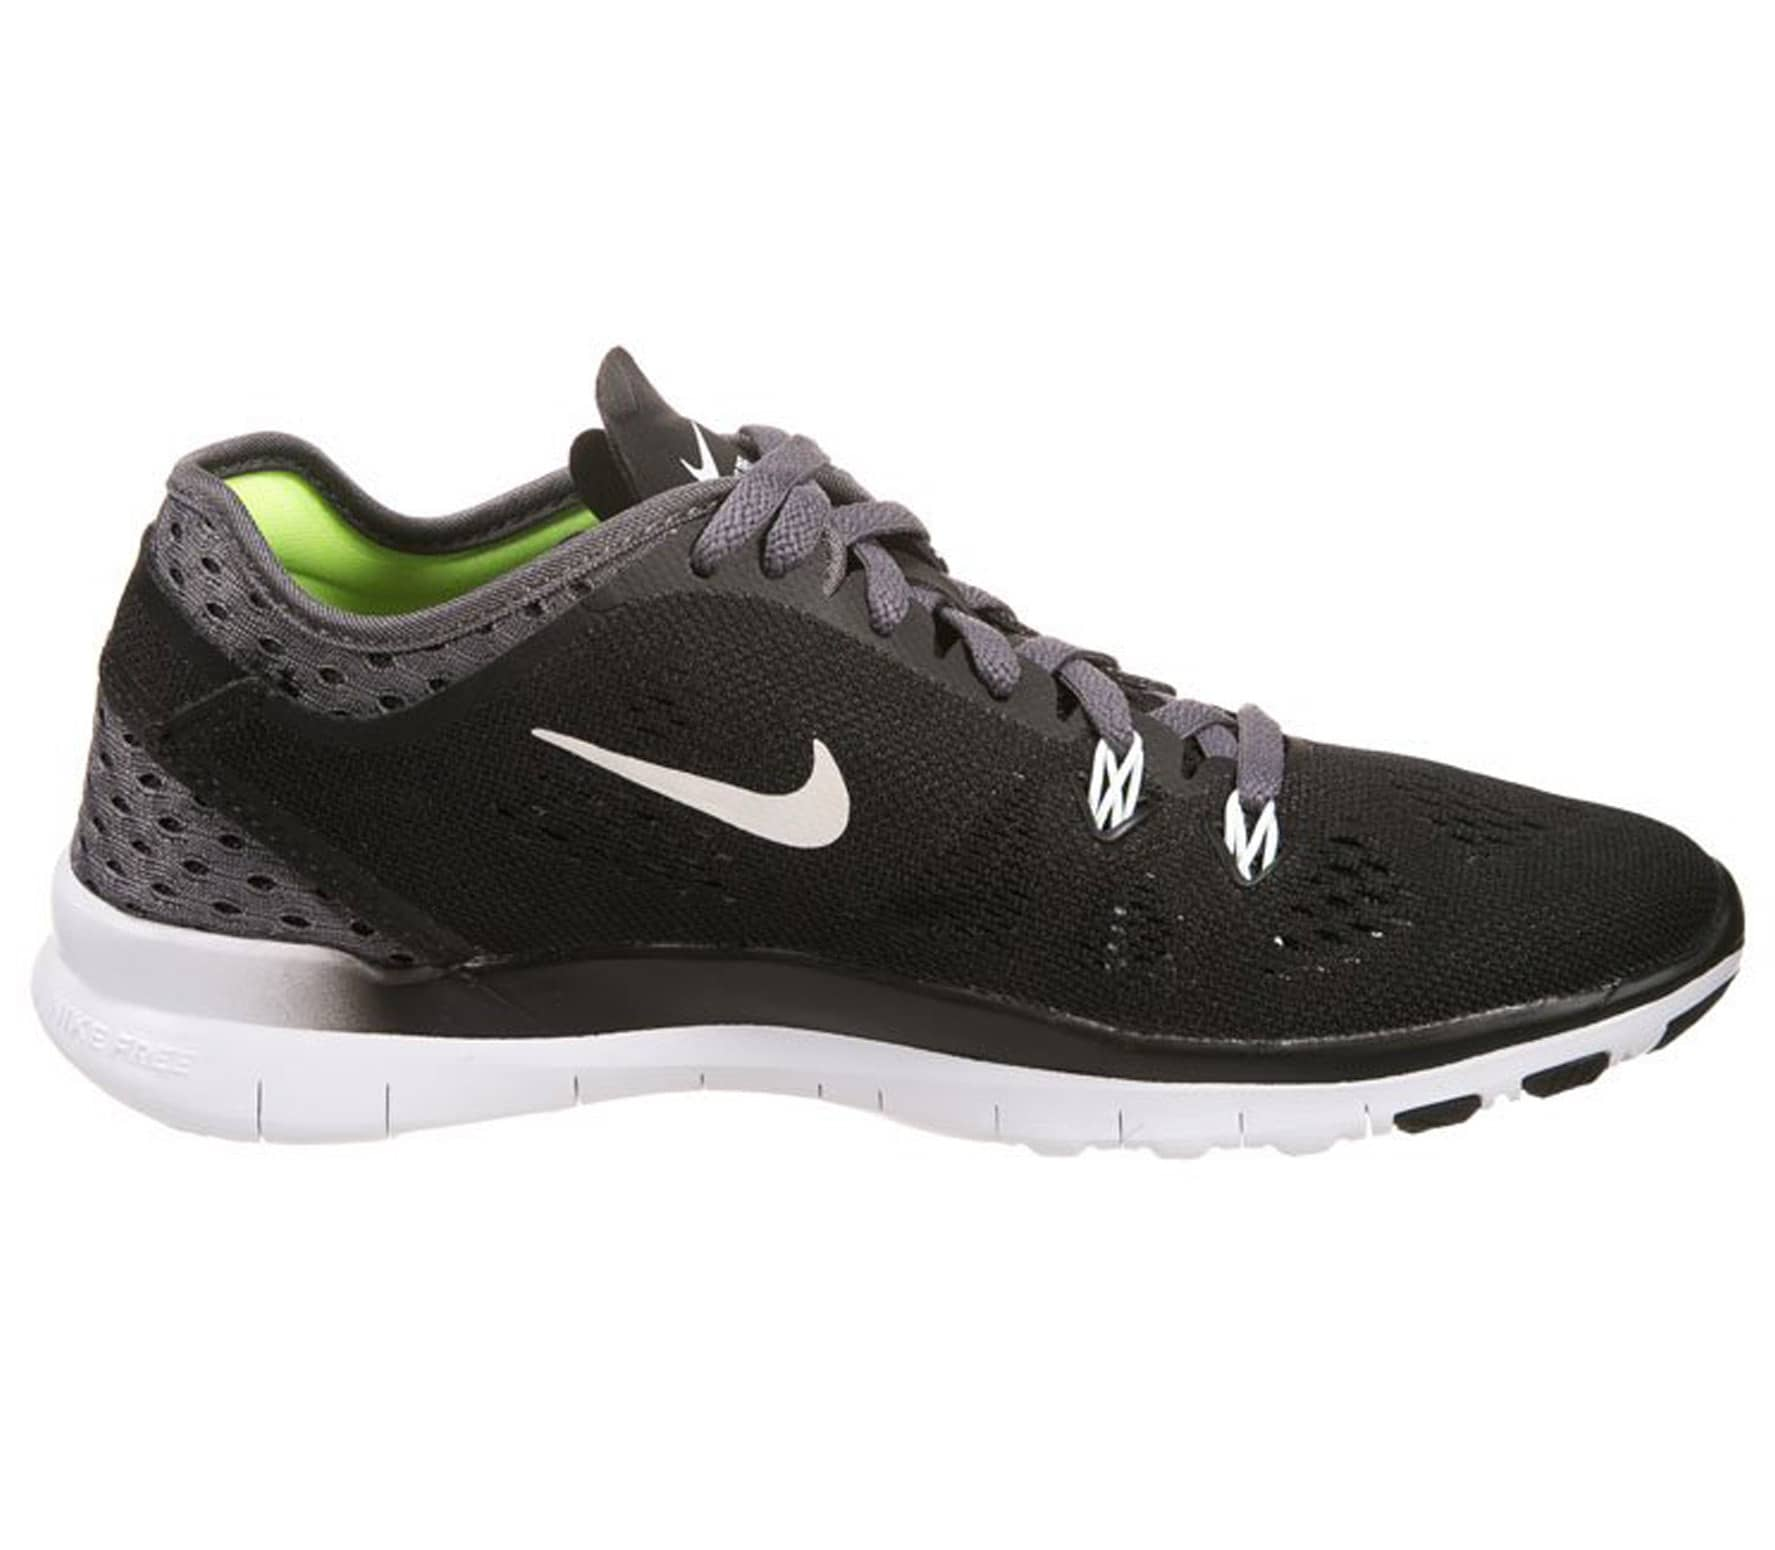 f4a73f28aef0 Nike - Free 5.0 TR Fit 5 Breathe women s training shoes (black grey ...